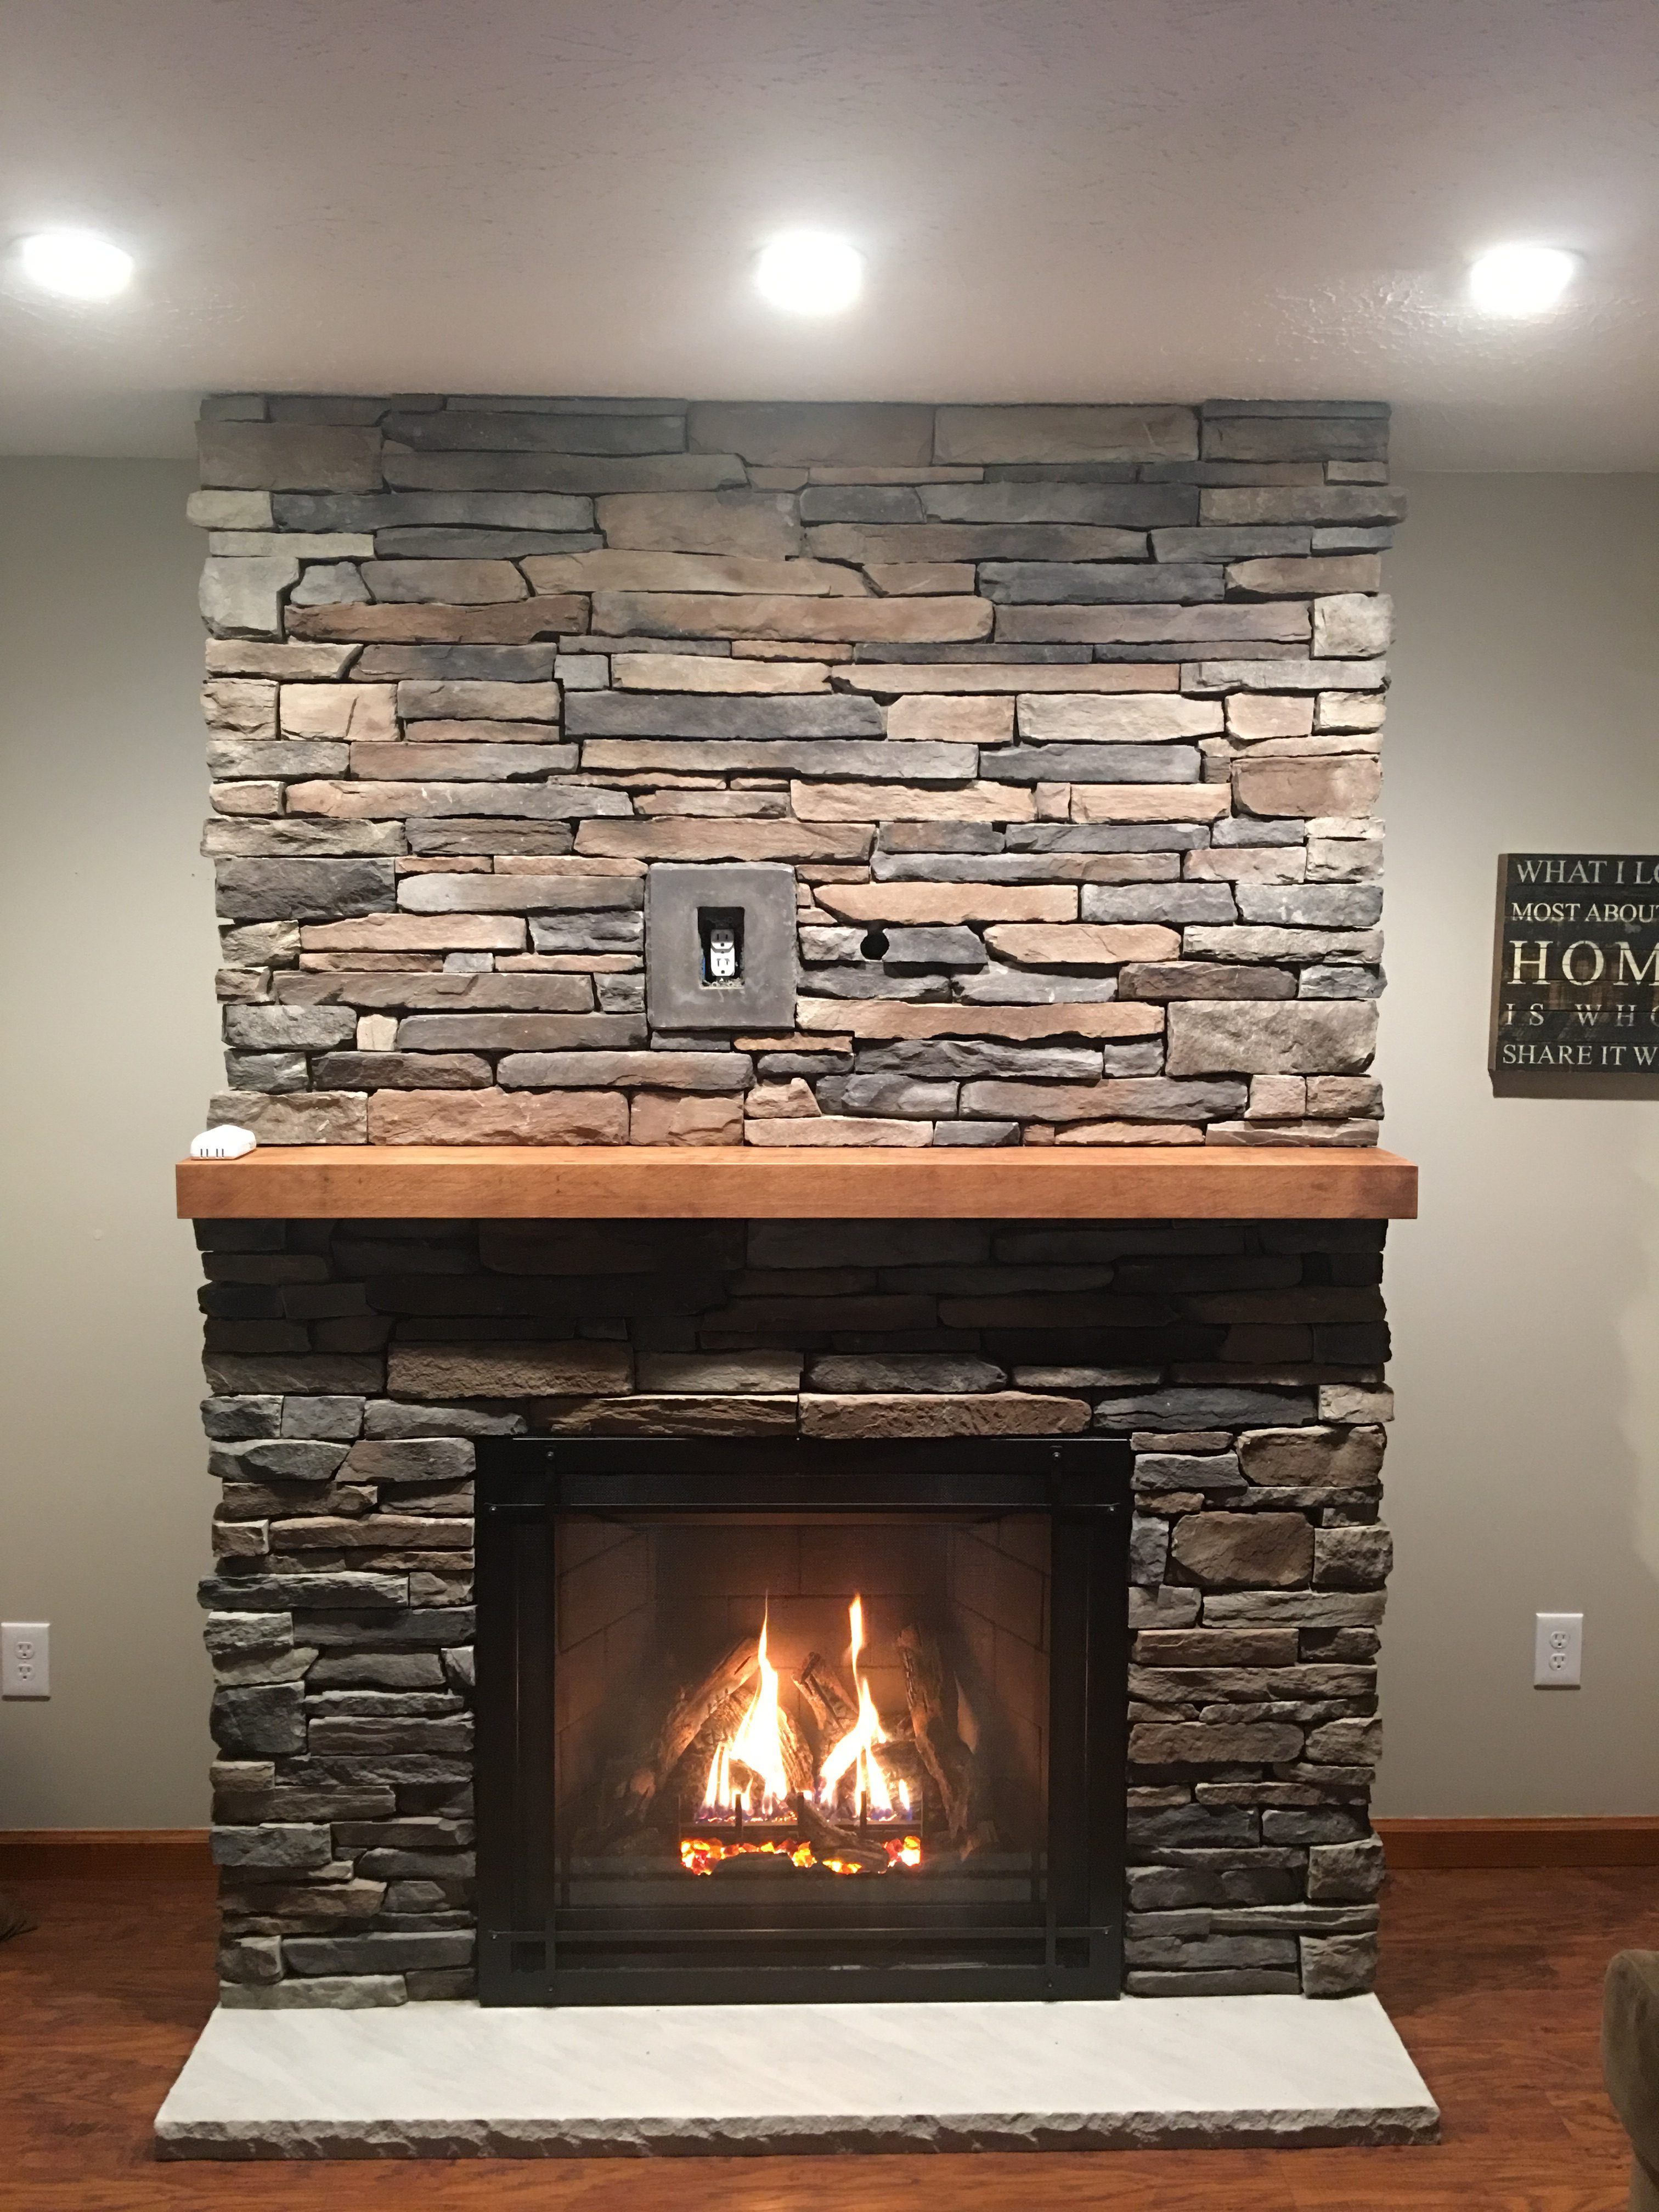 Image of a traditional Bayport 36-L gas fireplace by Kozy Heat featuring stone facing and mantle.